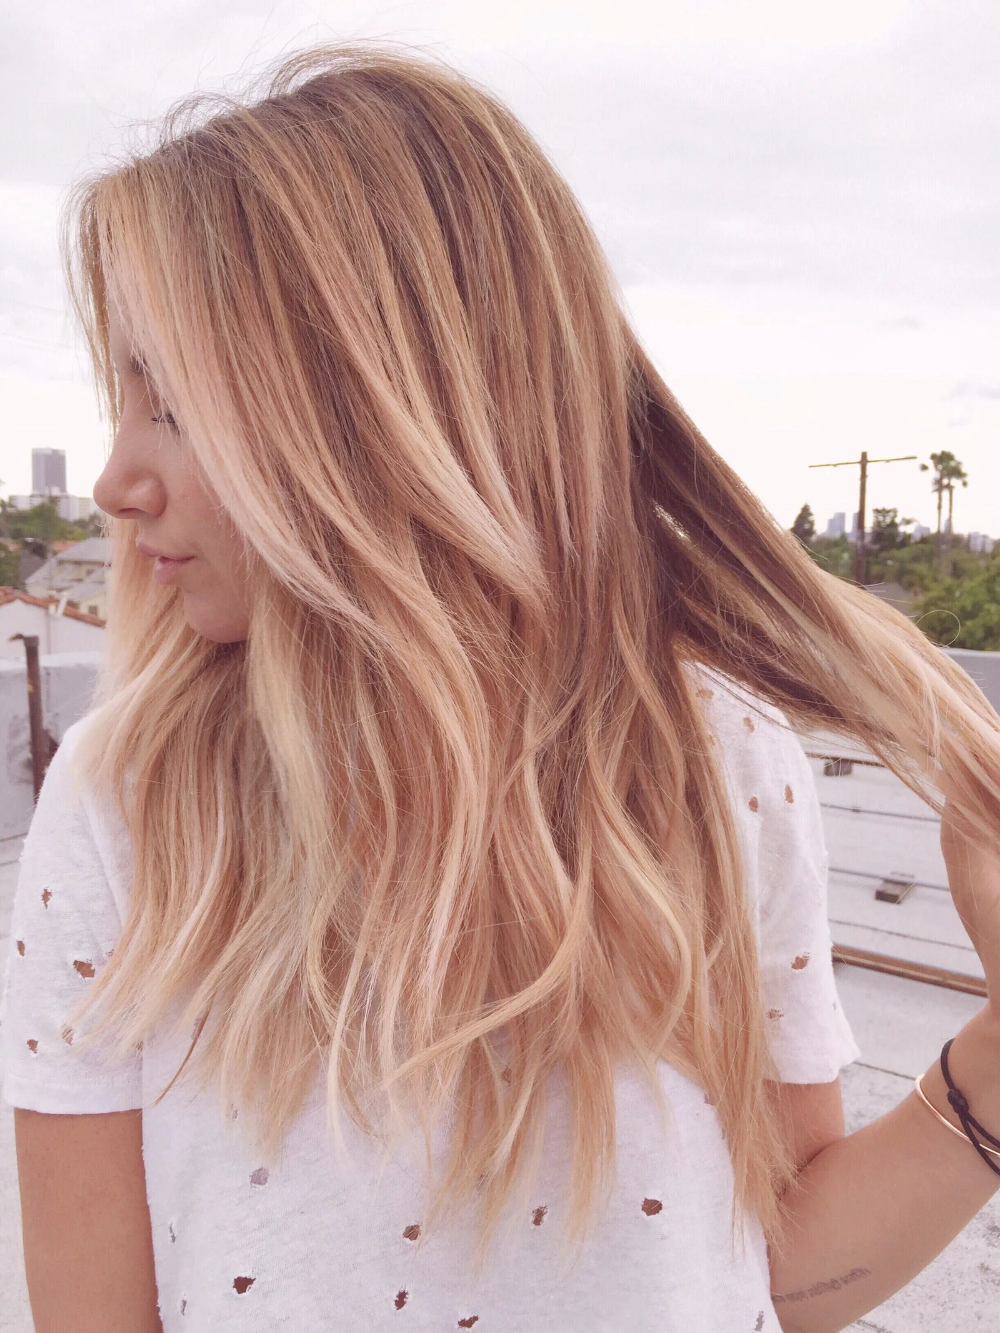 Ashley Tisdale's Cool New Hair Color Was Inspired by an Instagram Filter